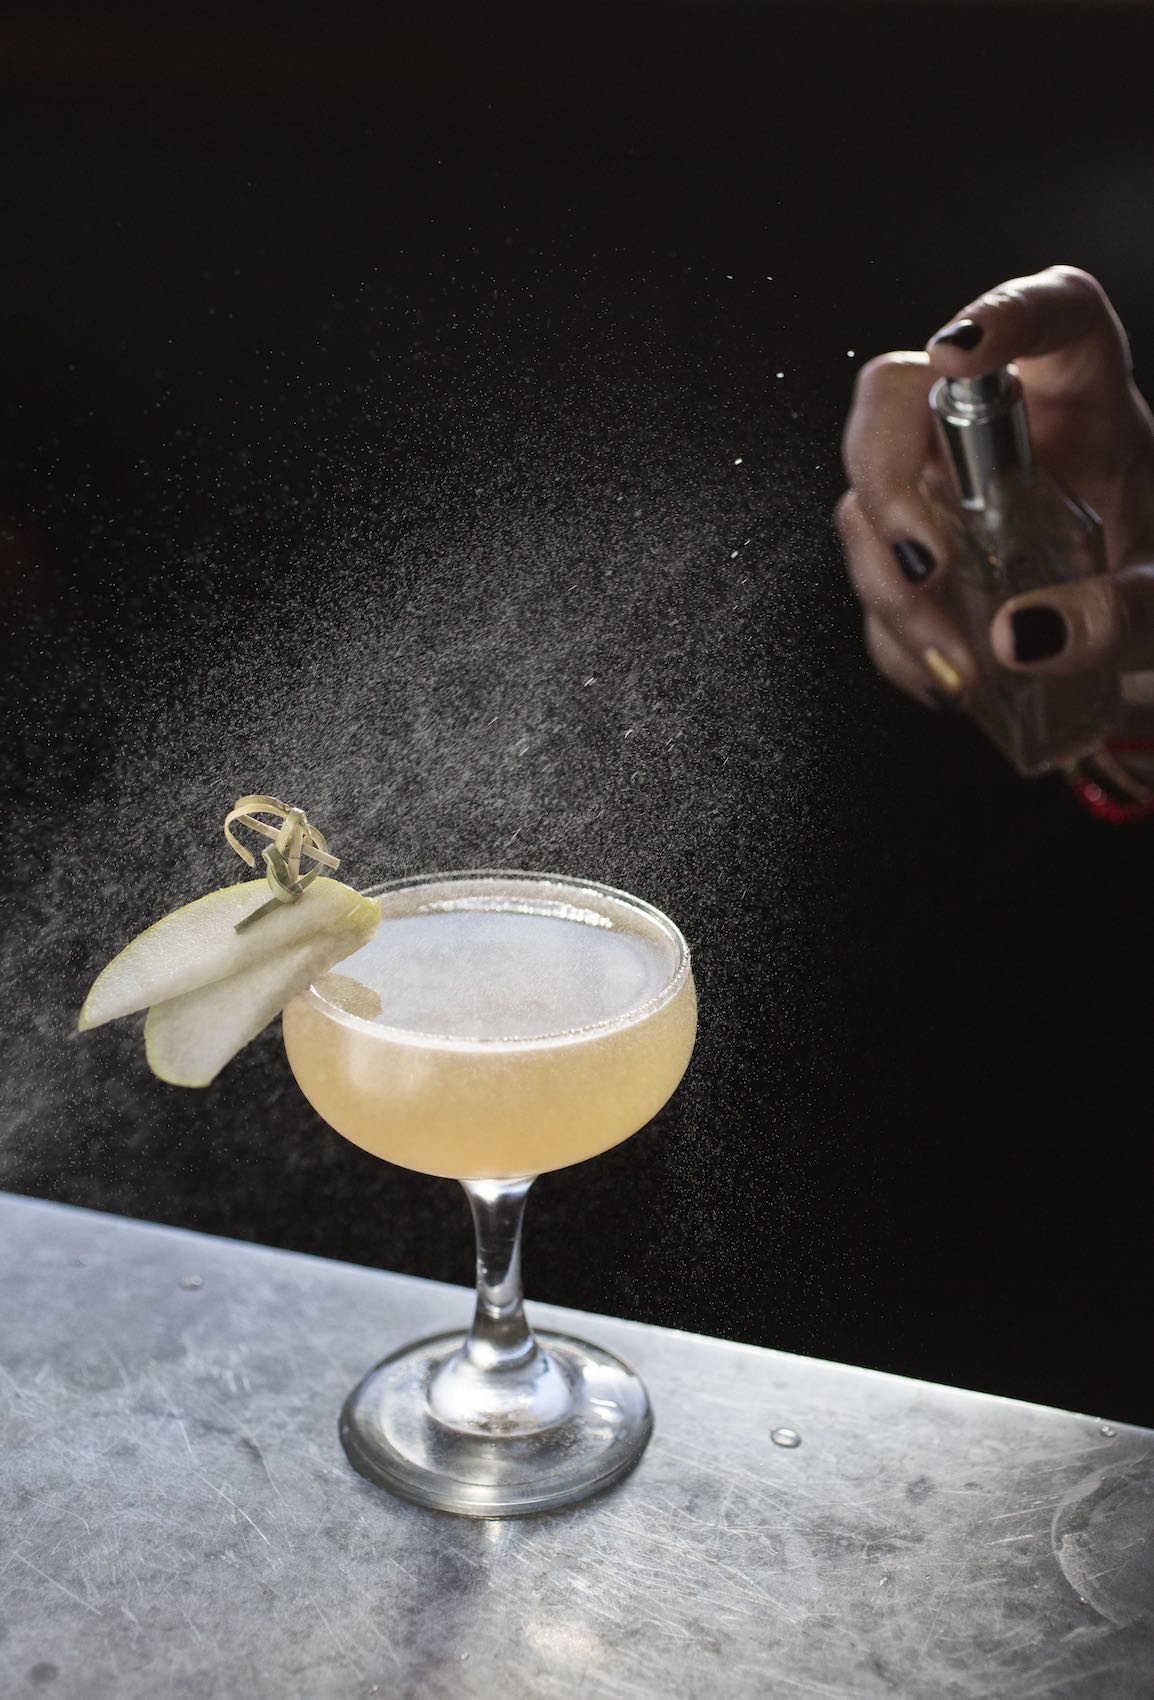 Jody Horton Photography - Misted cocktail in coup glass on granite.